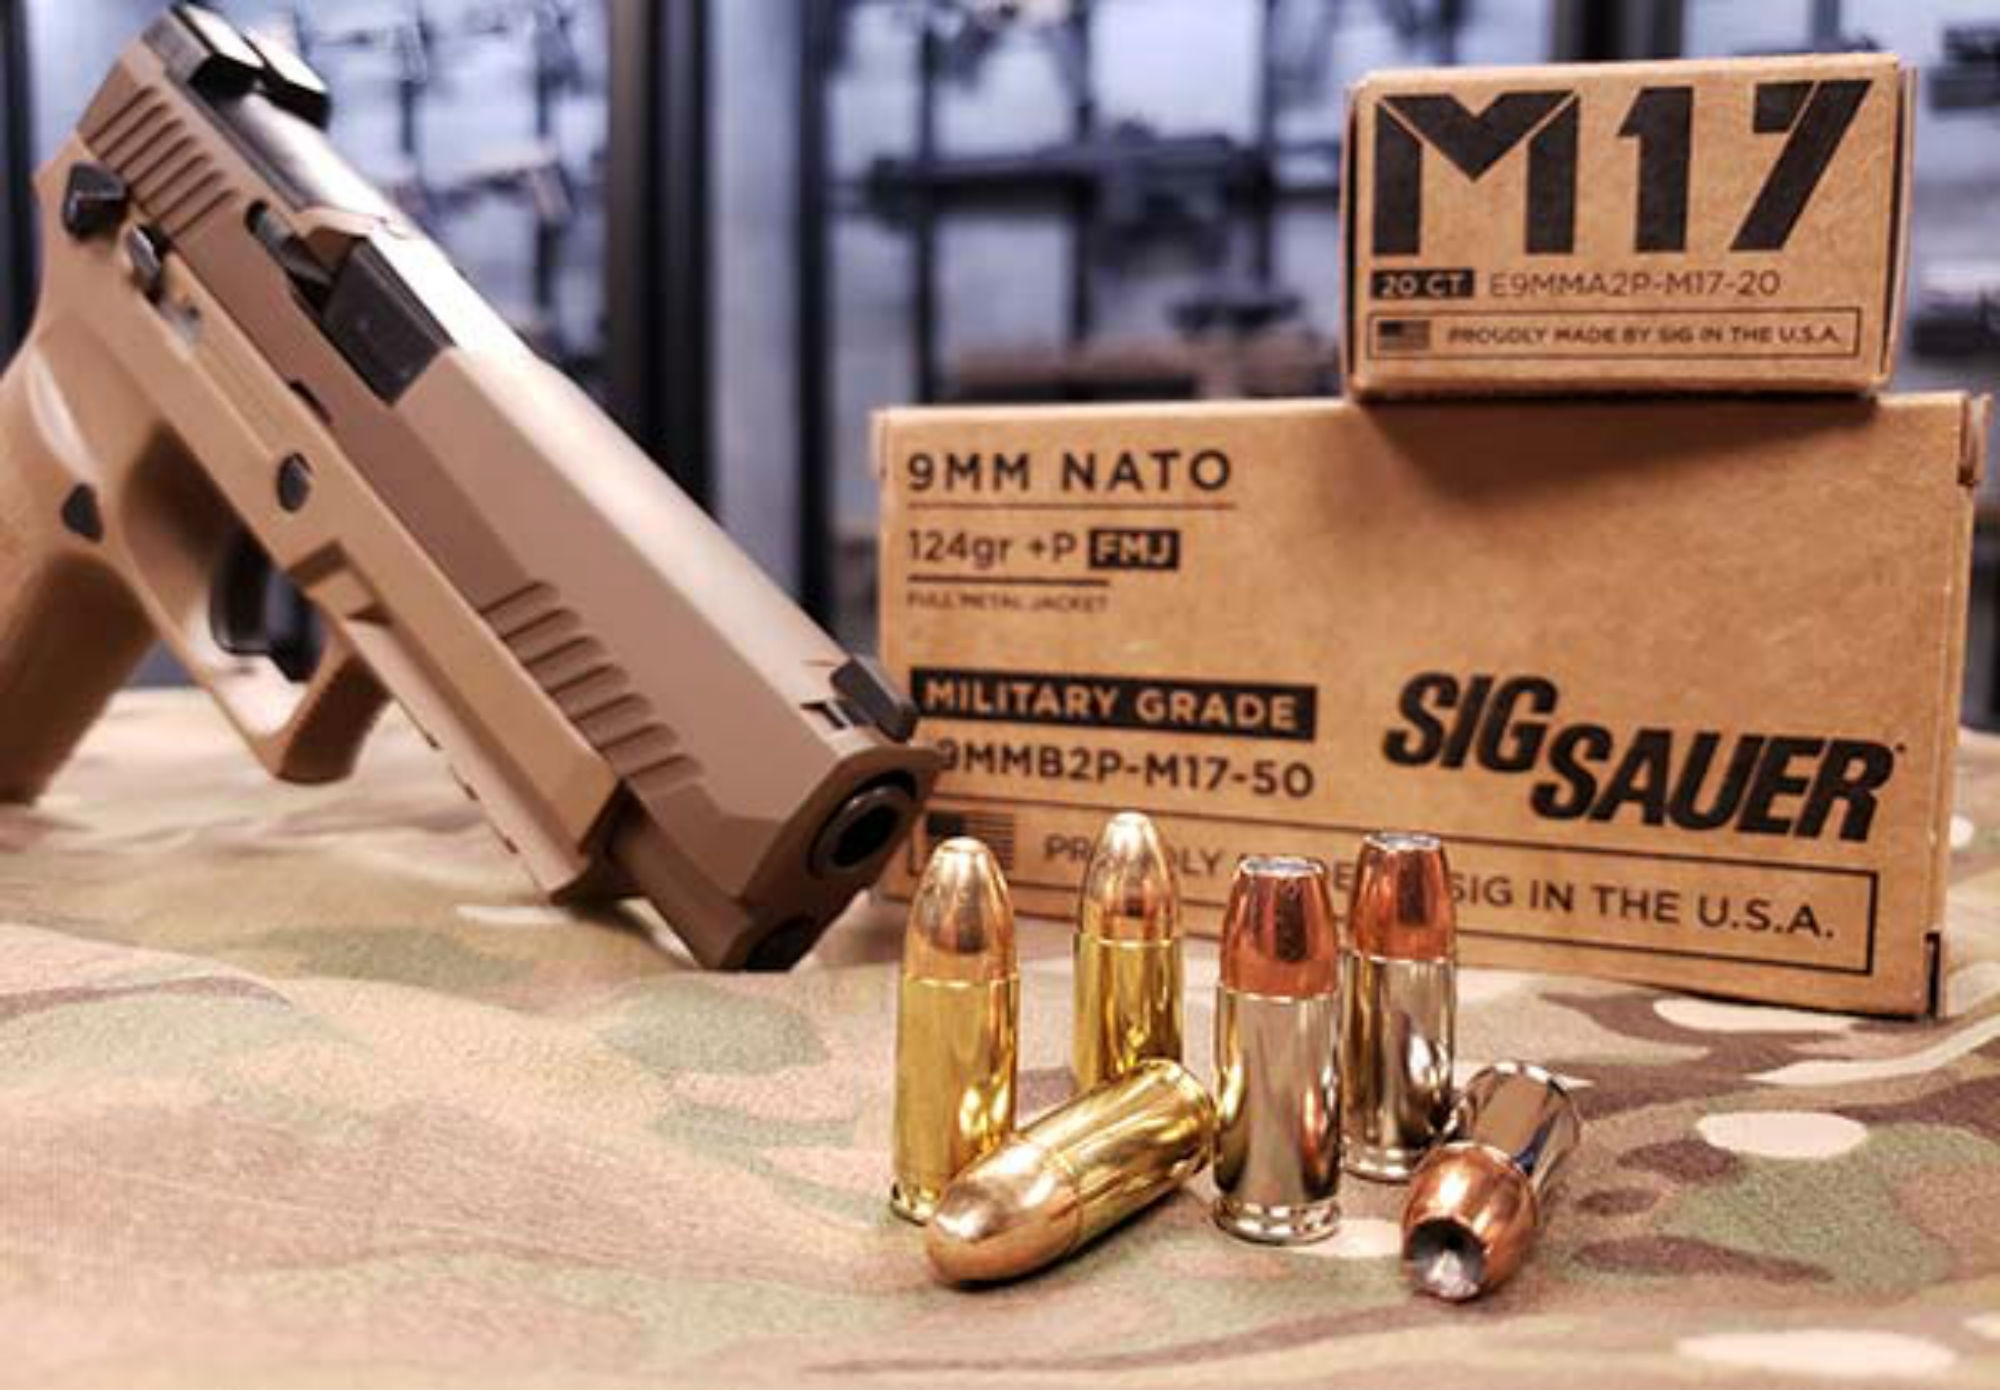 SIG Sauer introduces new M17 9mm +P ammunition